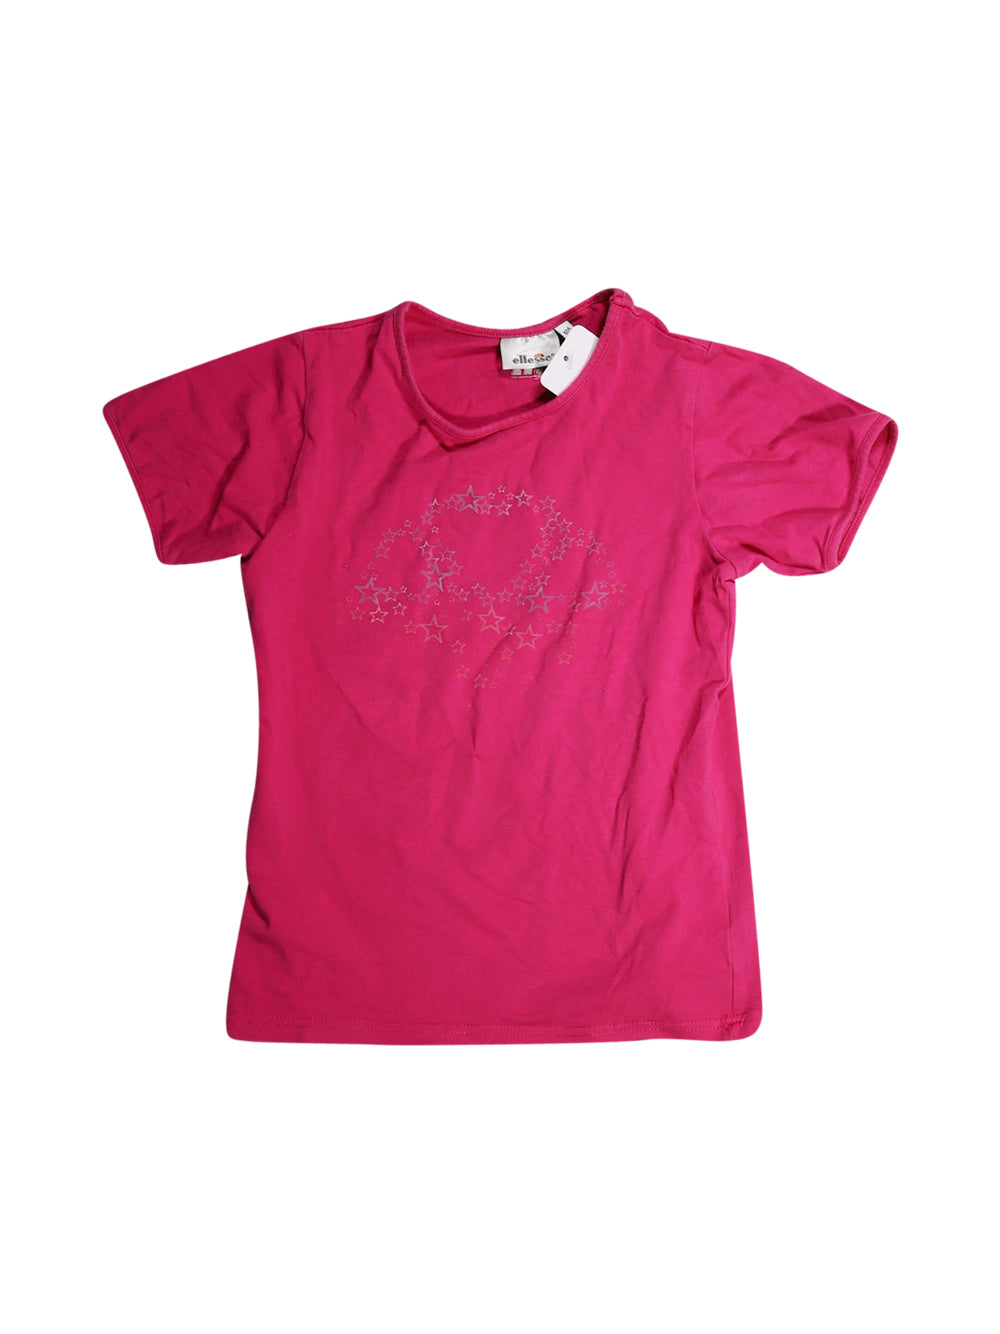 Front photo of Preloved Ellesse Pink Girl's t-shirt - size 10-12 yrs